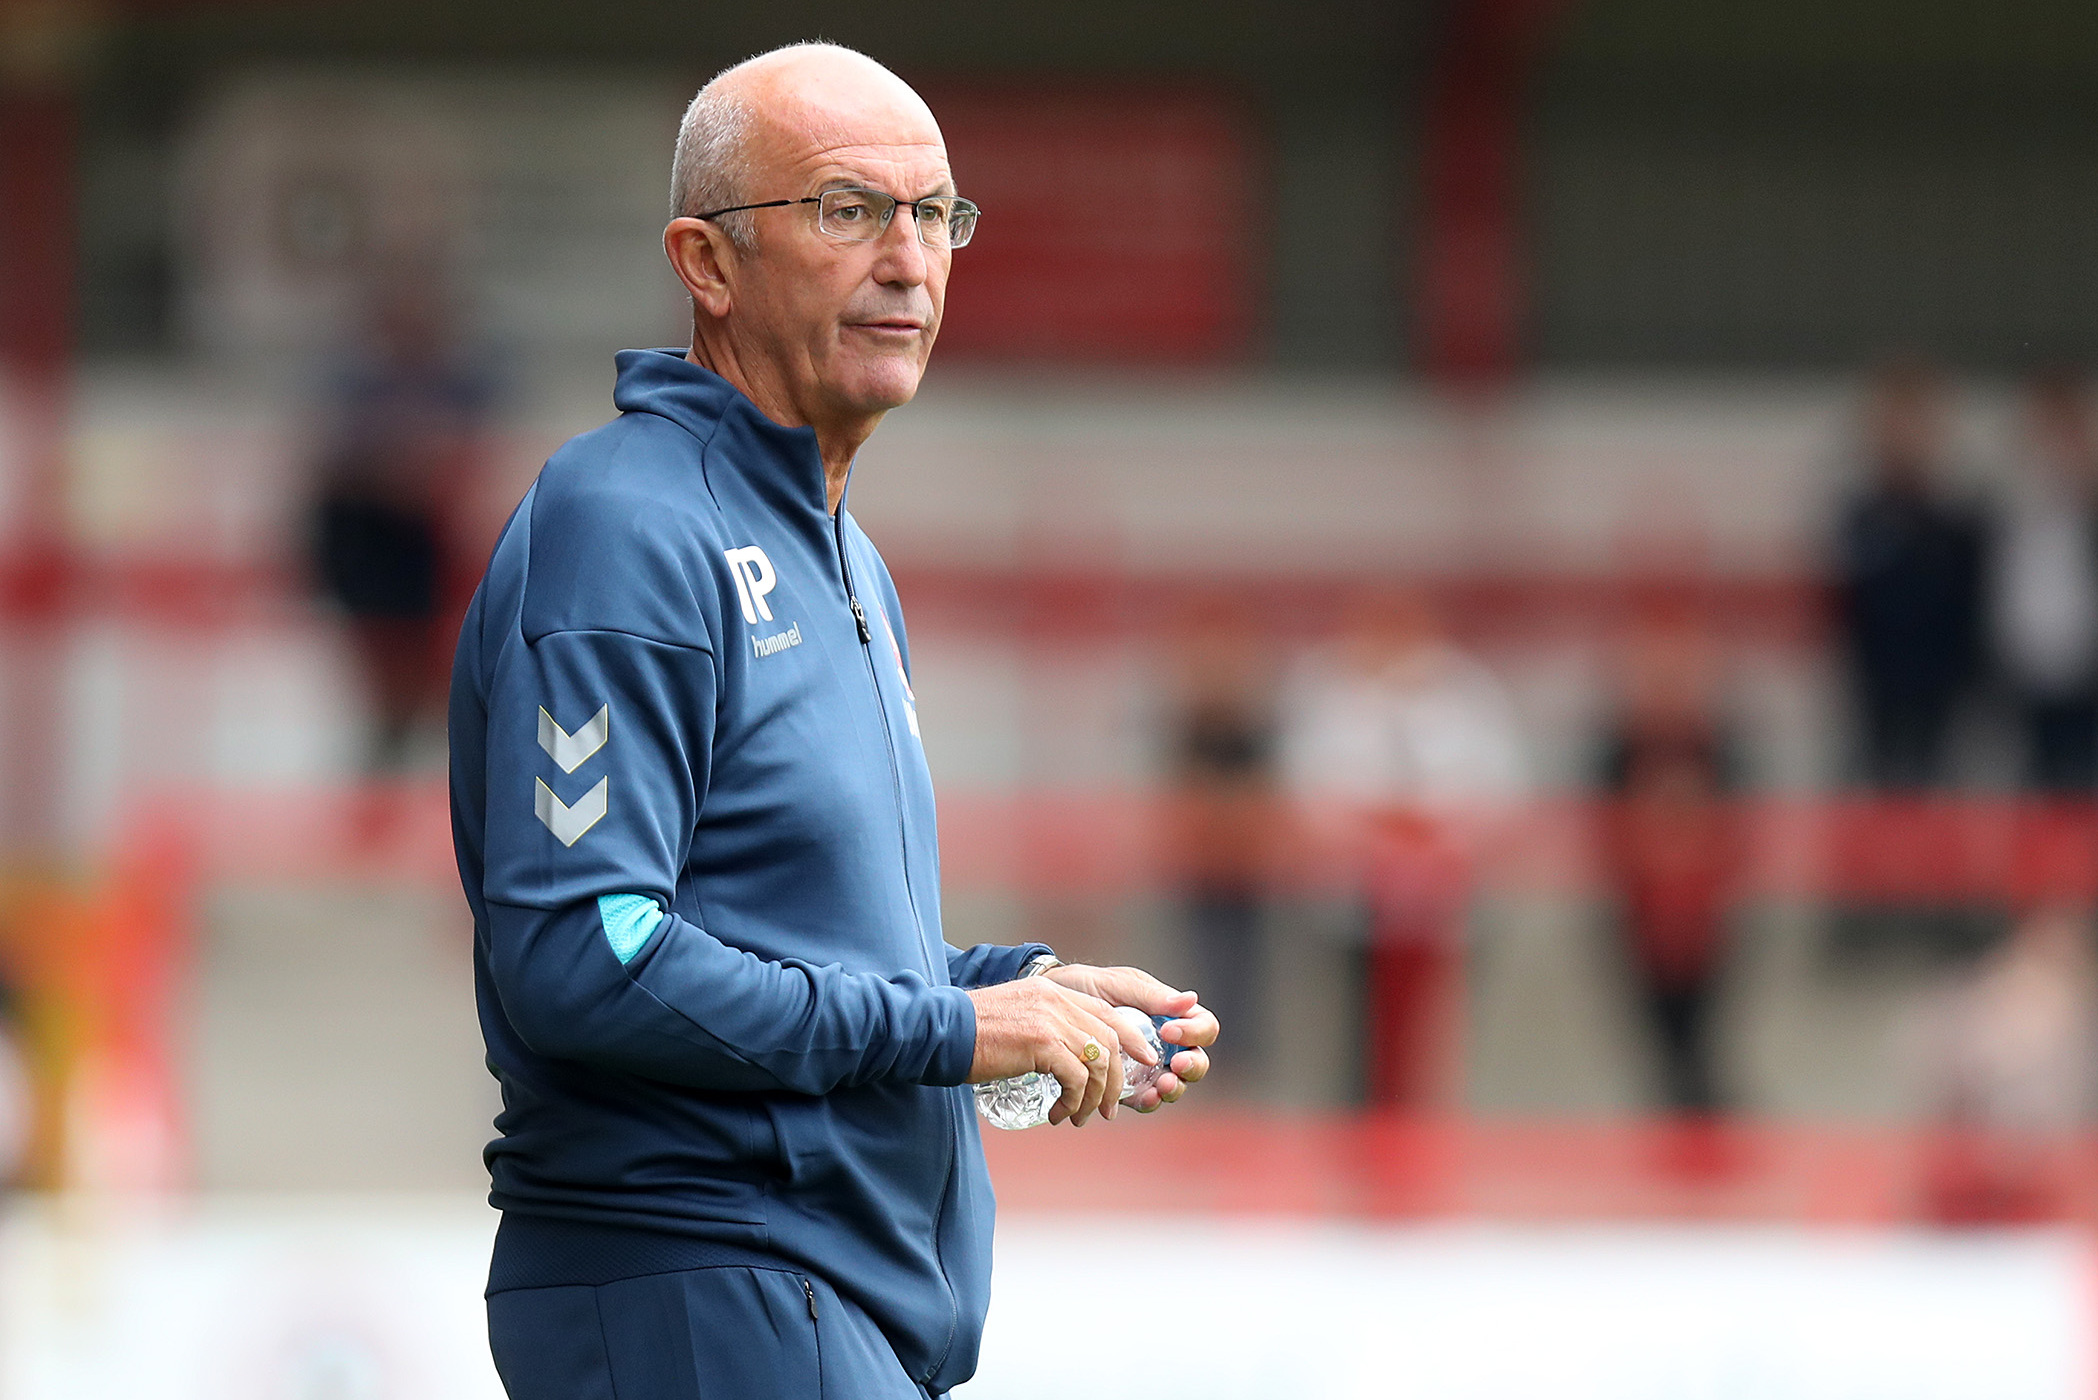 Tony Pulis explains how his off-field changes have improved things at Middlesbrough